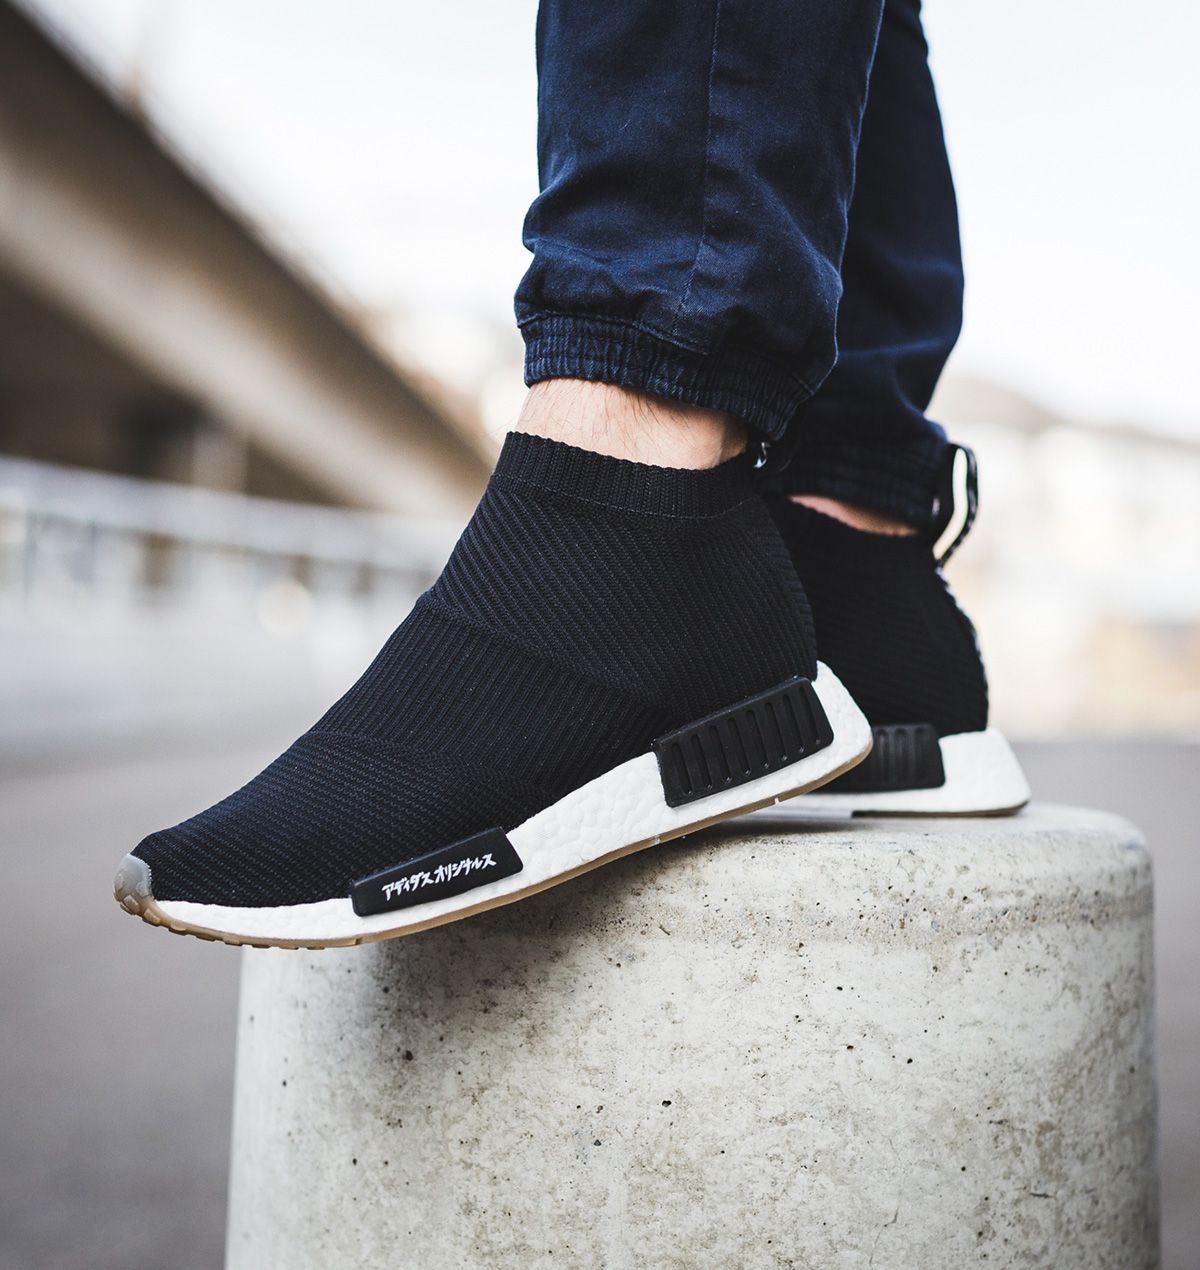 993cd0247b296 On-Foot  MIKITYPE x United Arrows   Sons x adidas NMD CS1 Primeknit - EU  Kicks  Sneaker Magazine